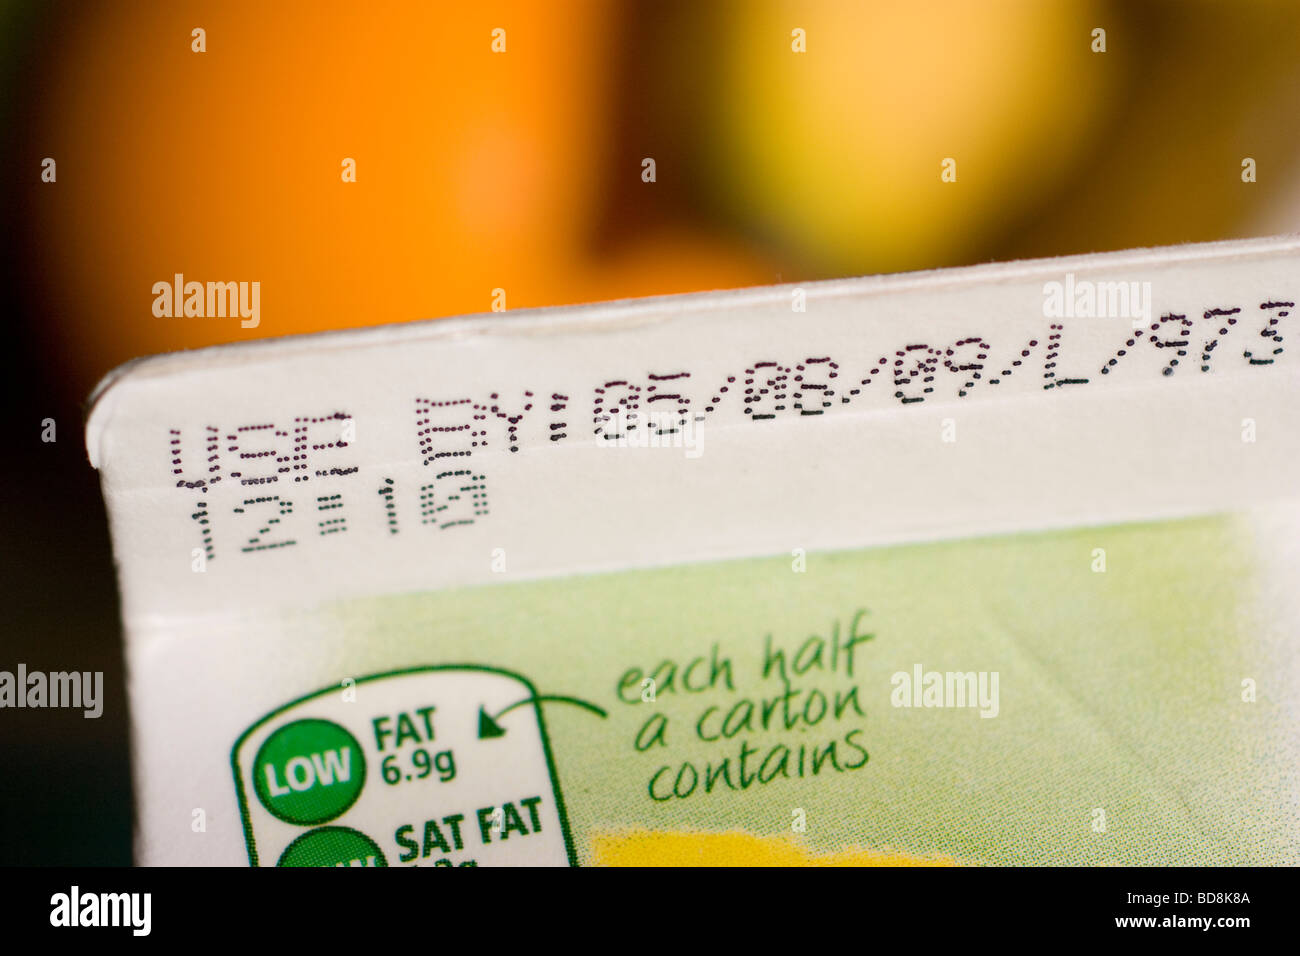 sell by date display until date on supermarket food items - Stock Image